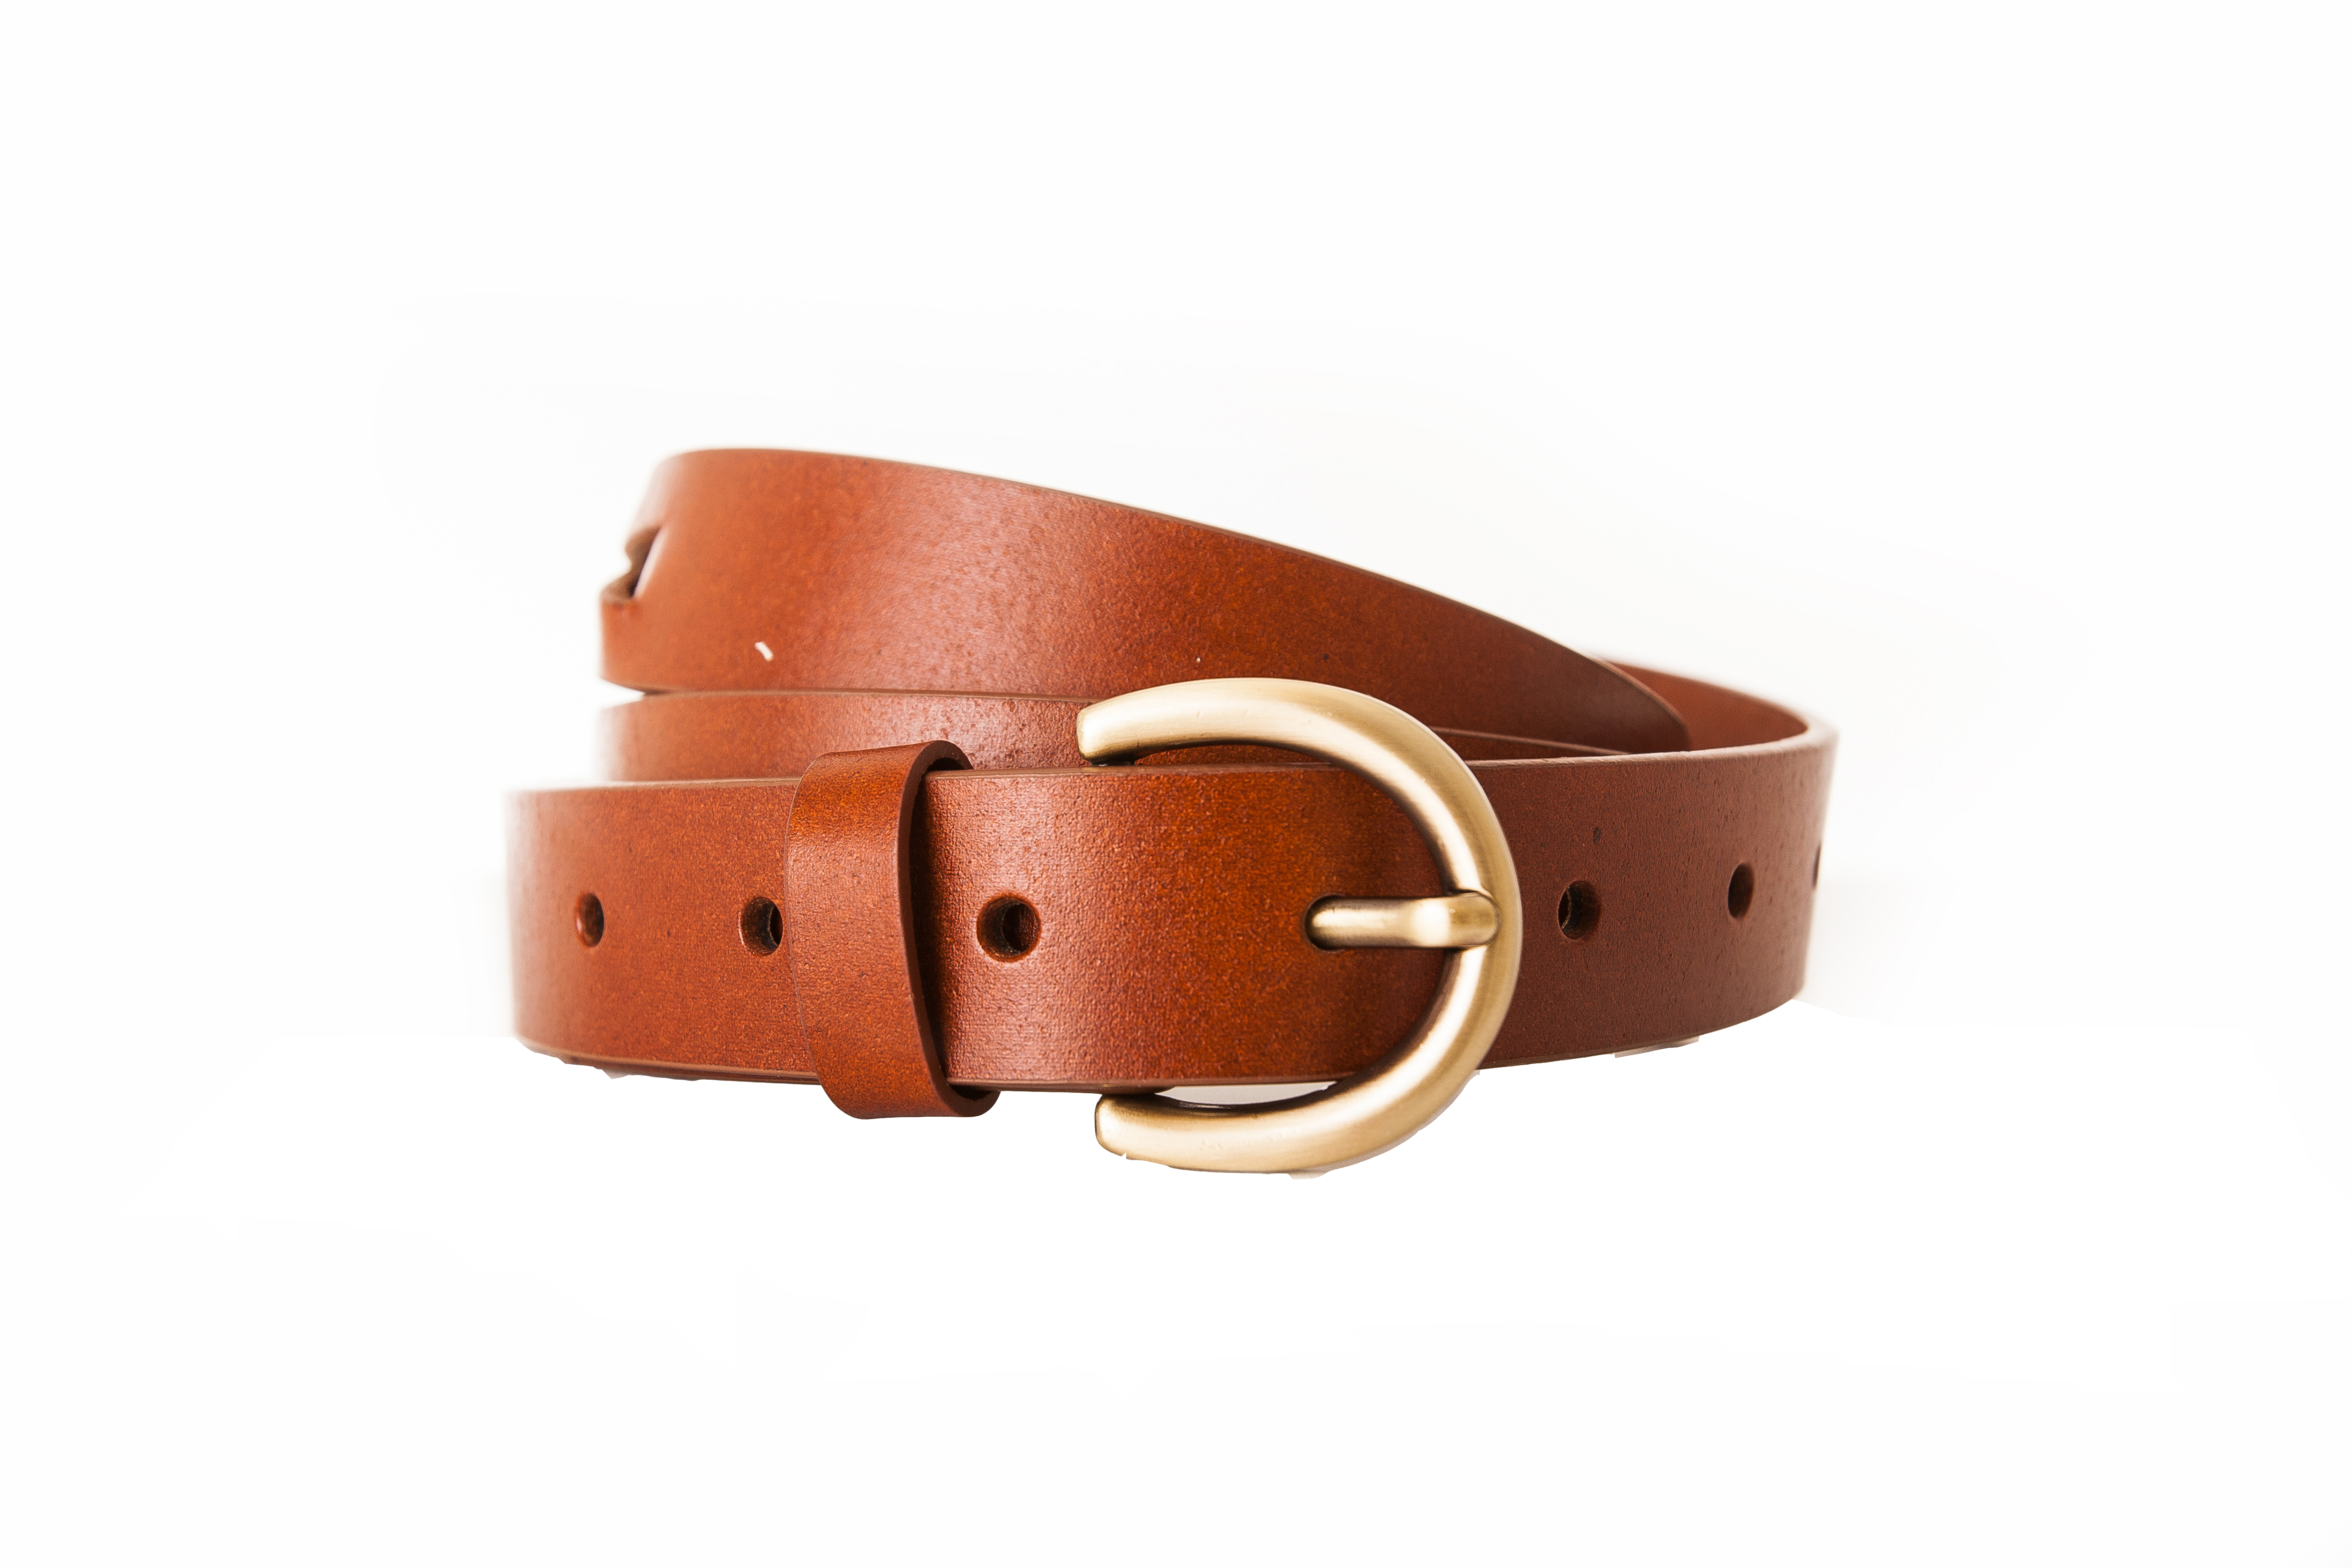 Pay attention to the finishing touches: browse an array of trendy, eye-catching belts carefully designed to complement our designer clothing styles.